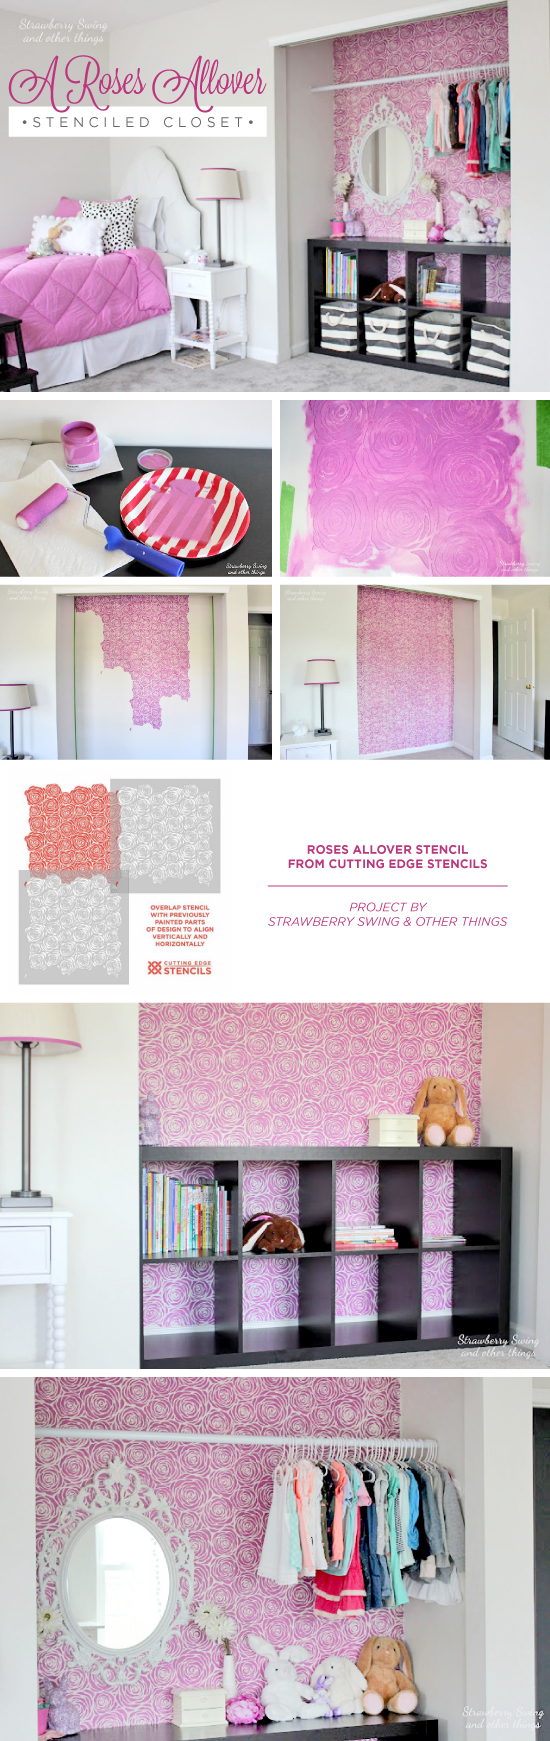 Cutting Edge Stencils shares a DIY stenciled closet idea in a girl's bedroom using the Roses Allover Stencil in Pantone's radiant orchid. http://www.cuttingedgestencils.com/roses-stencil-pattern-rose-design.html